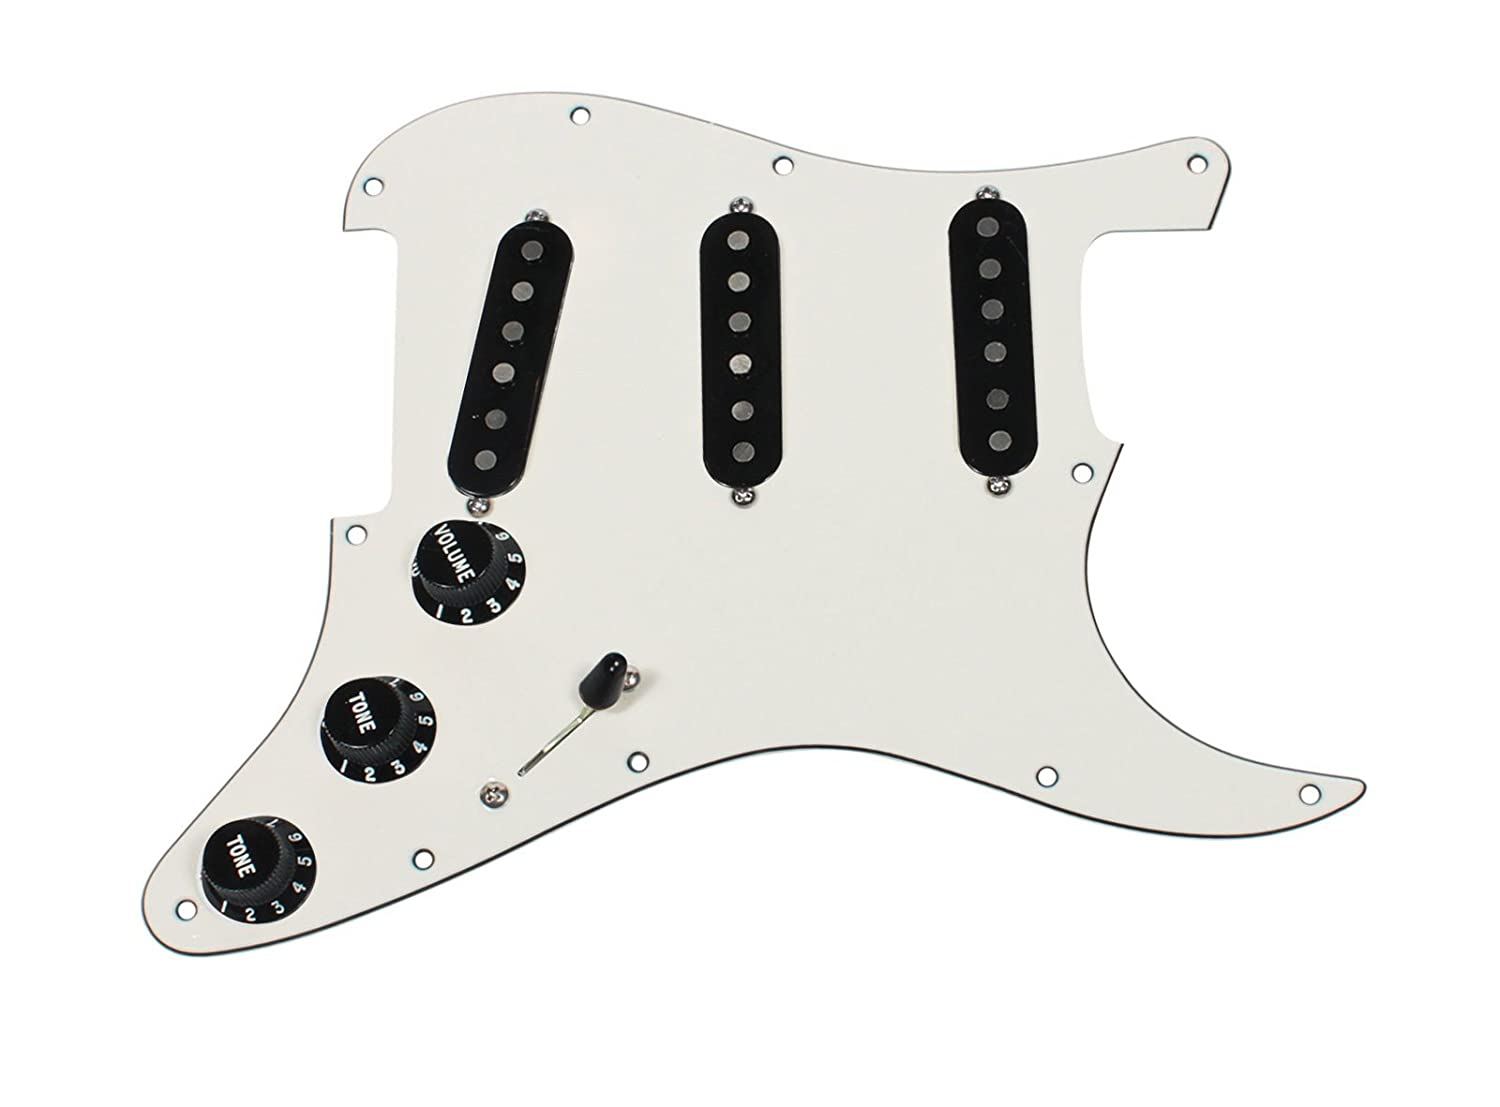 Fender Custom '54 Black Loaded Strat Pickguard Parchment / Black комбо для гитары fender 57 custom twin amp